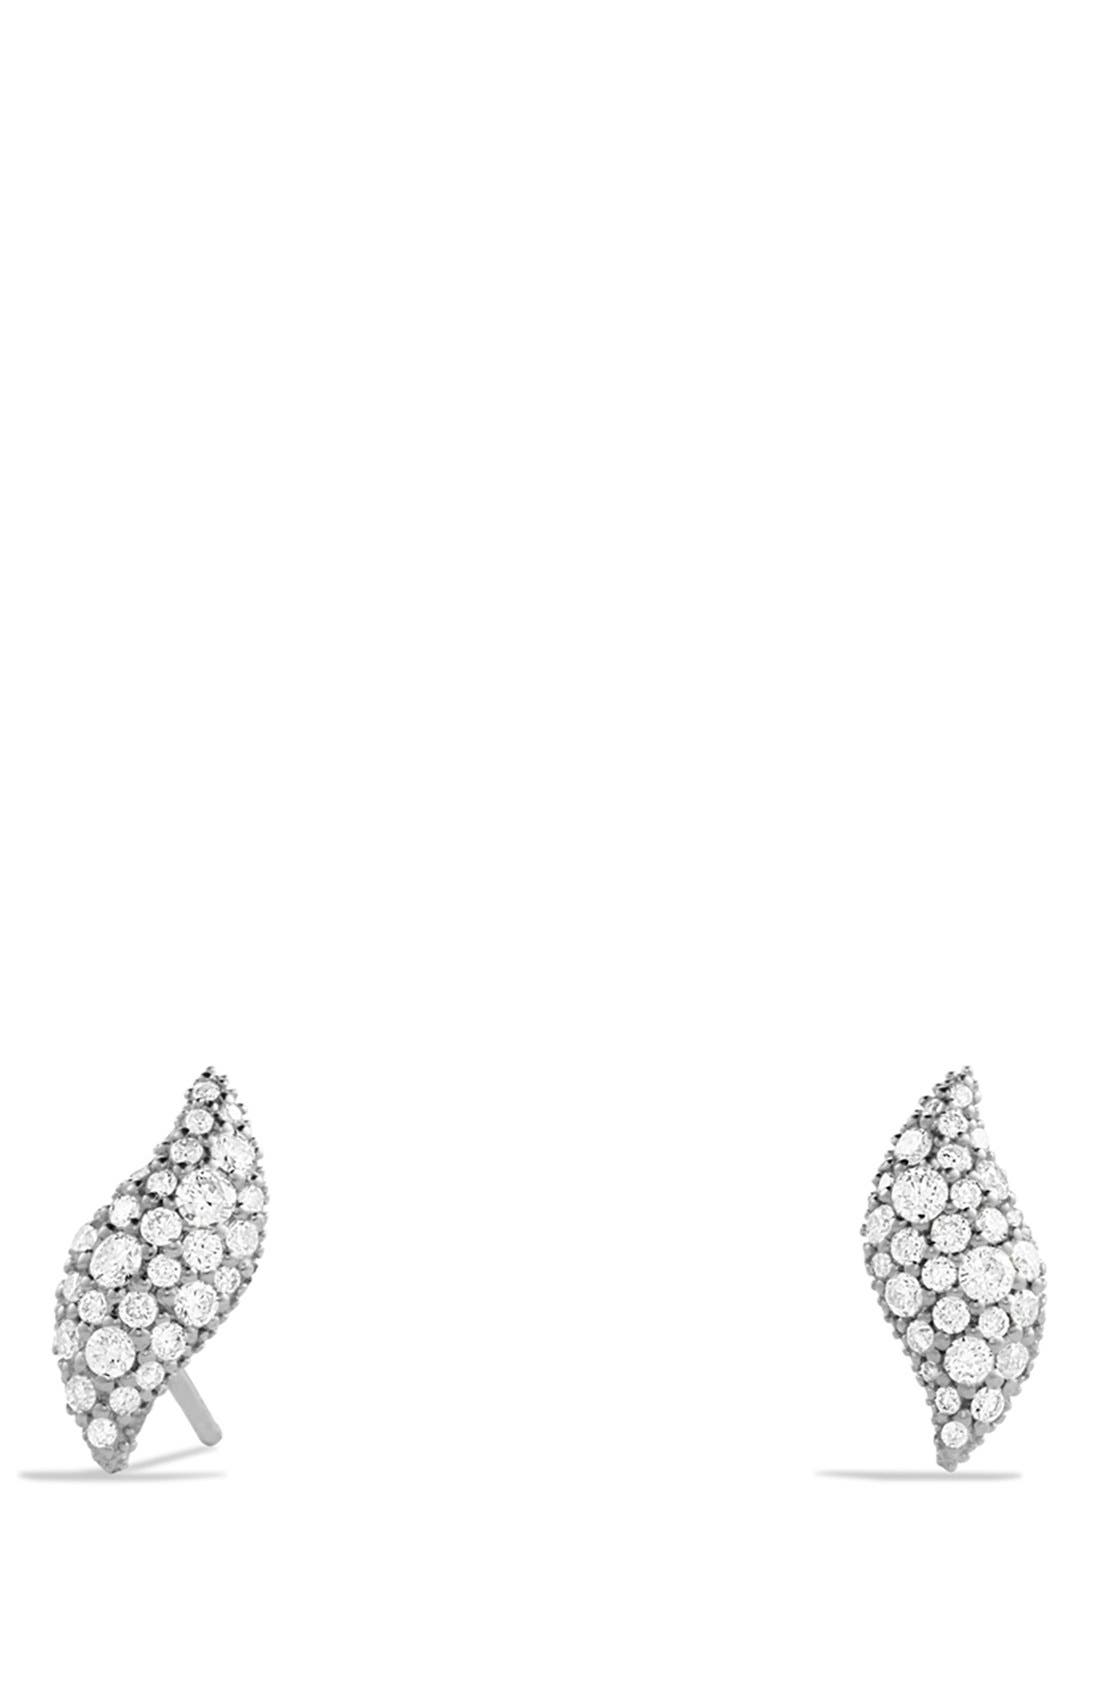 David Yurman 'Hampton Cable' Earrings with Diamonds